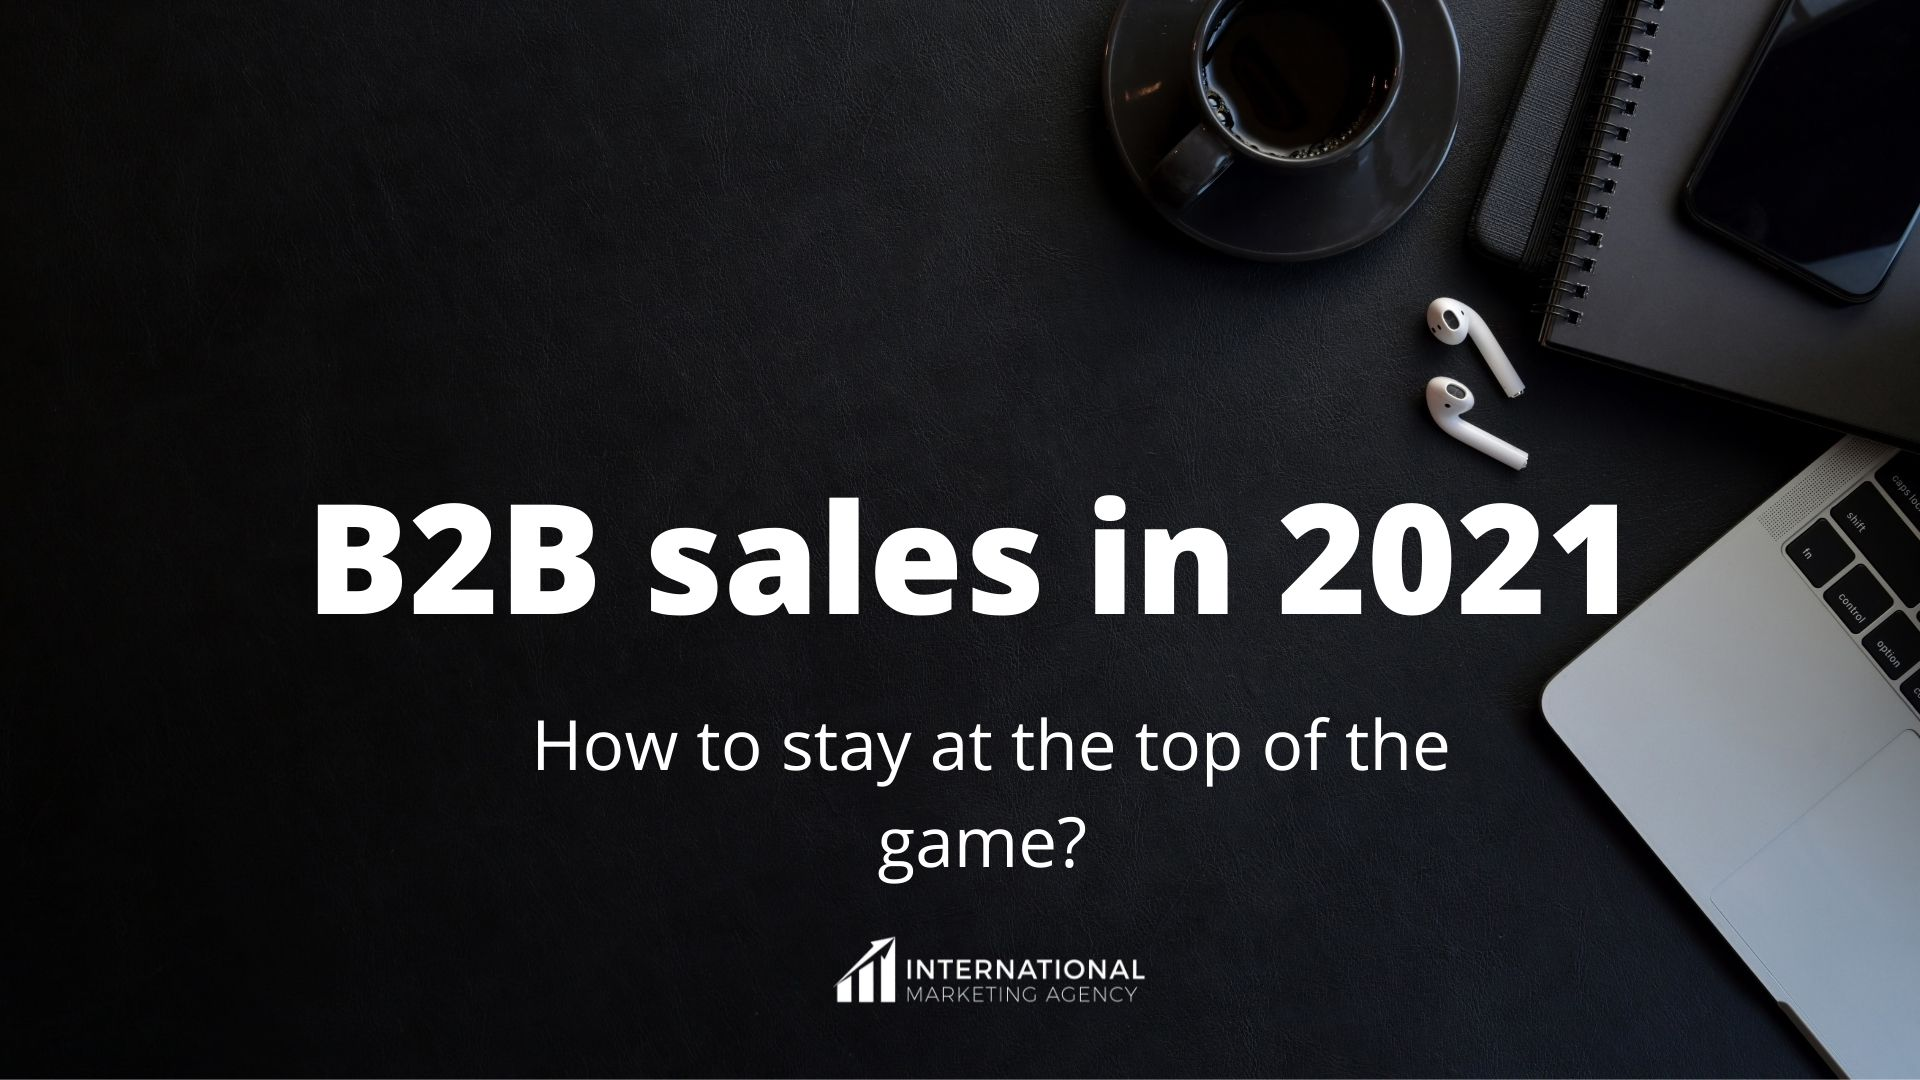 B2B sales in 2021 - how to stay at the top of the game?